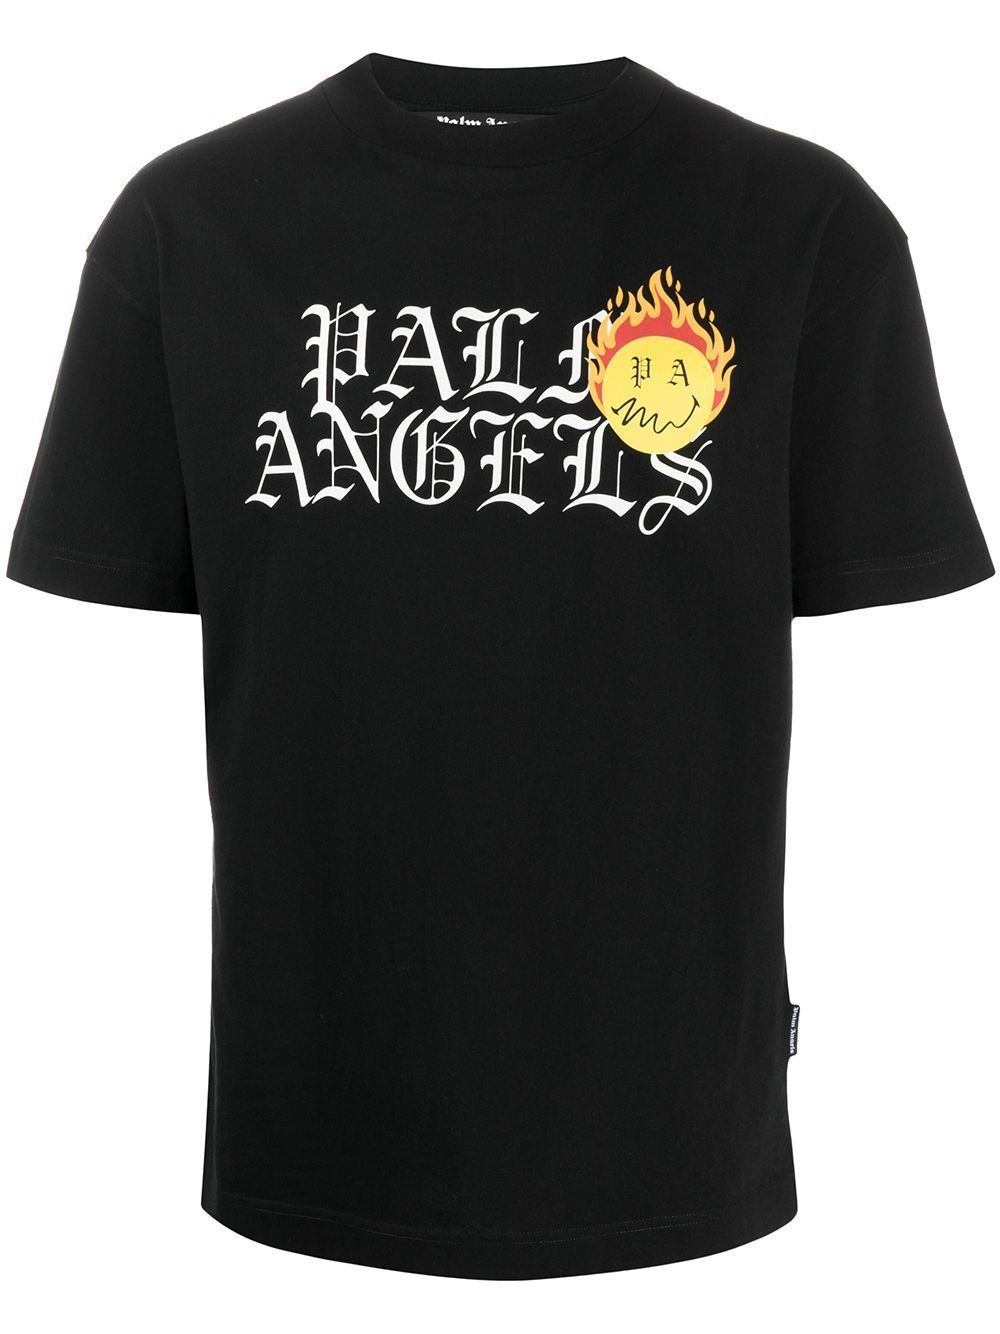 PALM ANGELS Burning Head Logo T-Shirt Black - Maison De Fashion